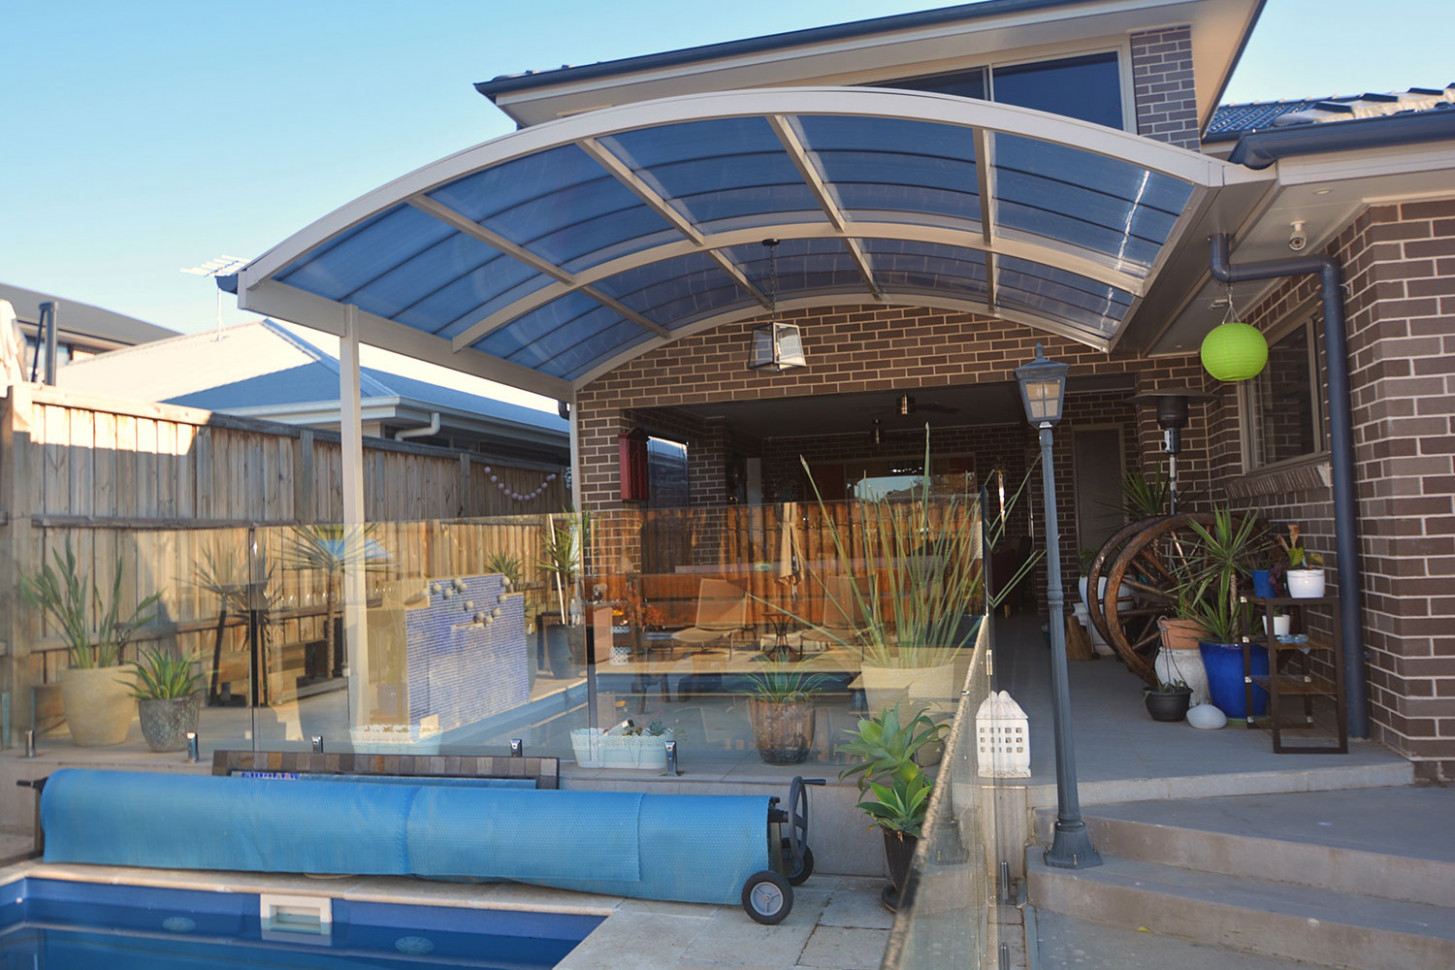 Commercial Awnings for Flat & Pitched Roofs | ATS Awnings